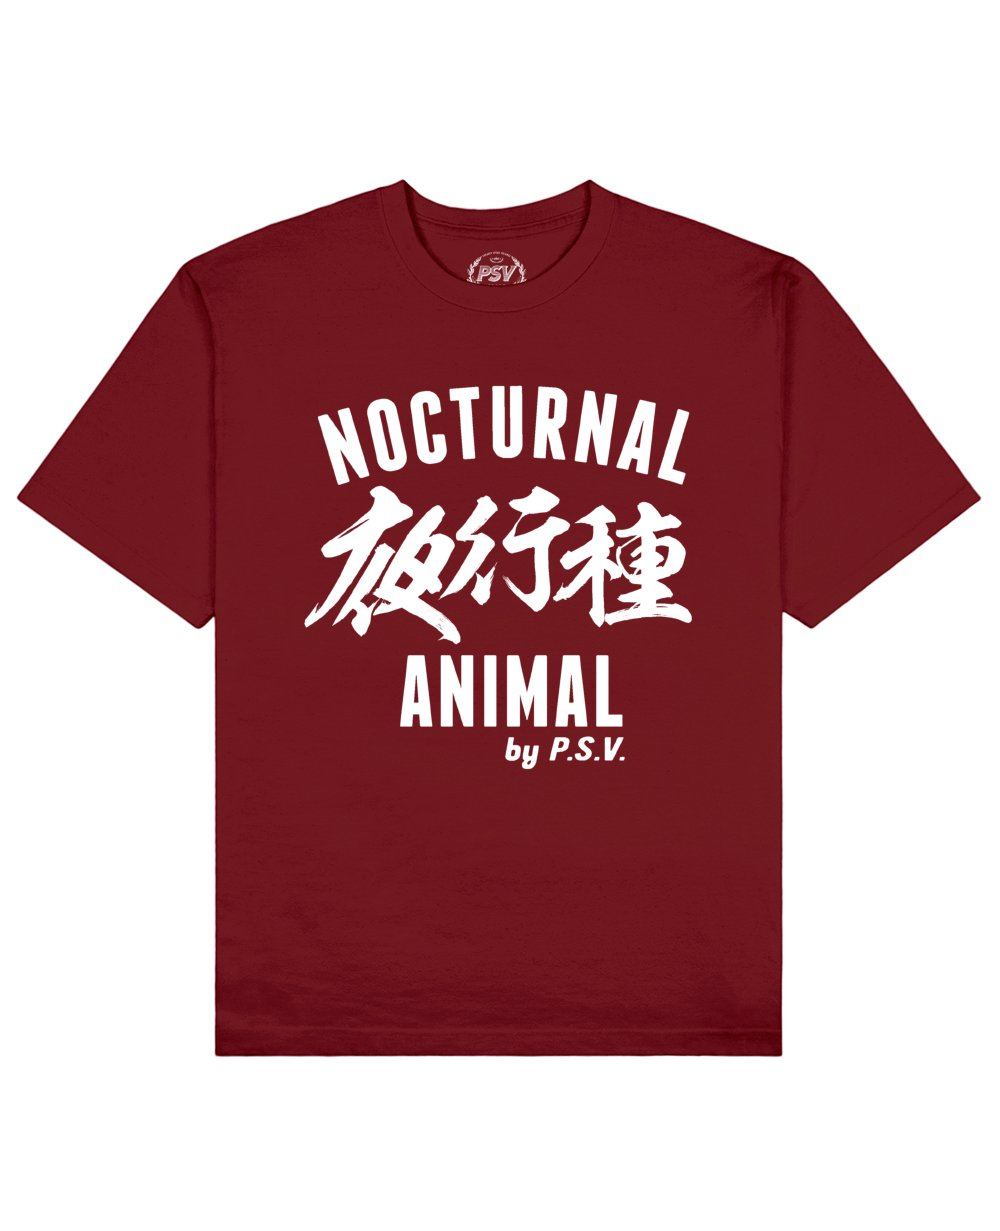 Nocturnal Animal Print T-Shirt in Red - T-Shirts - PSV - BRANMA